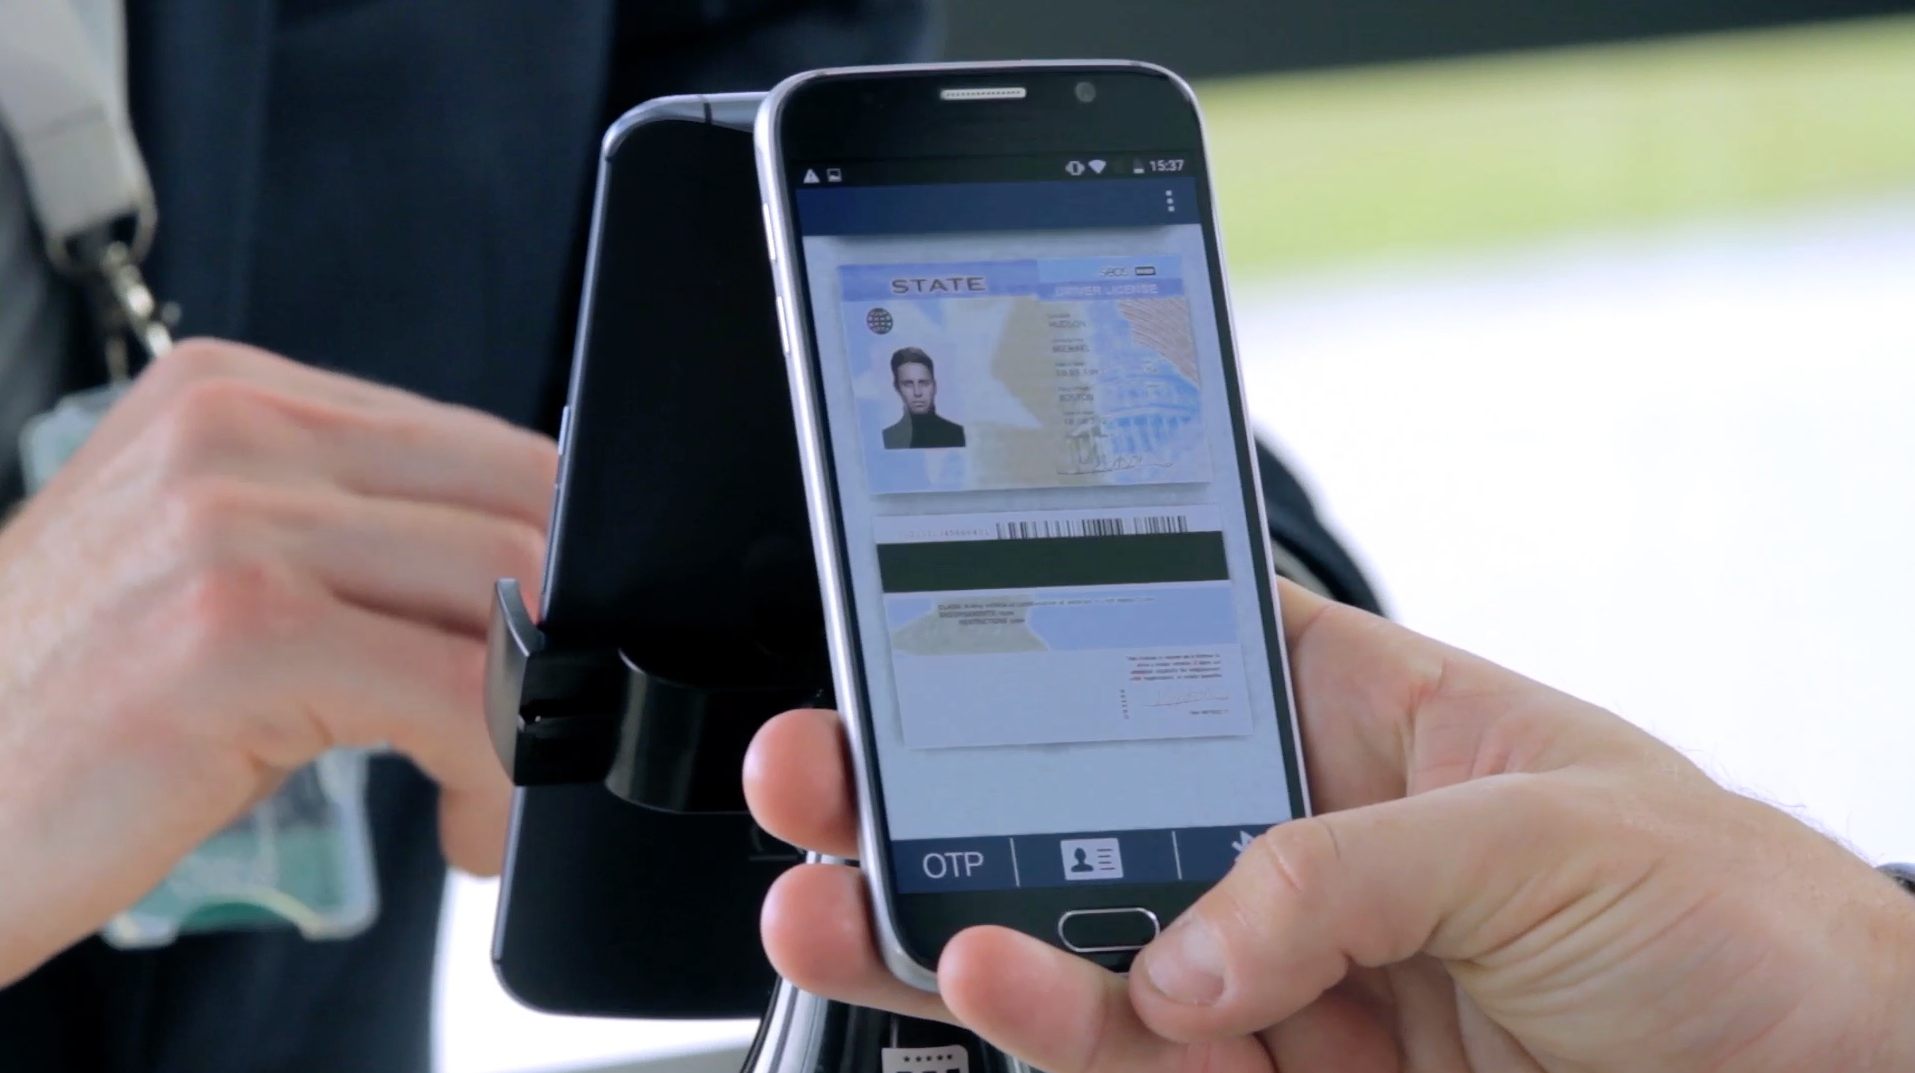 HID Global to provide governments with end-to-end solution for mobile citizen IDs